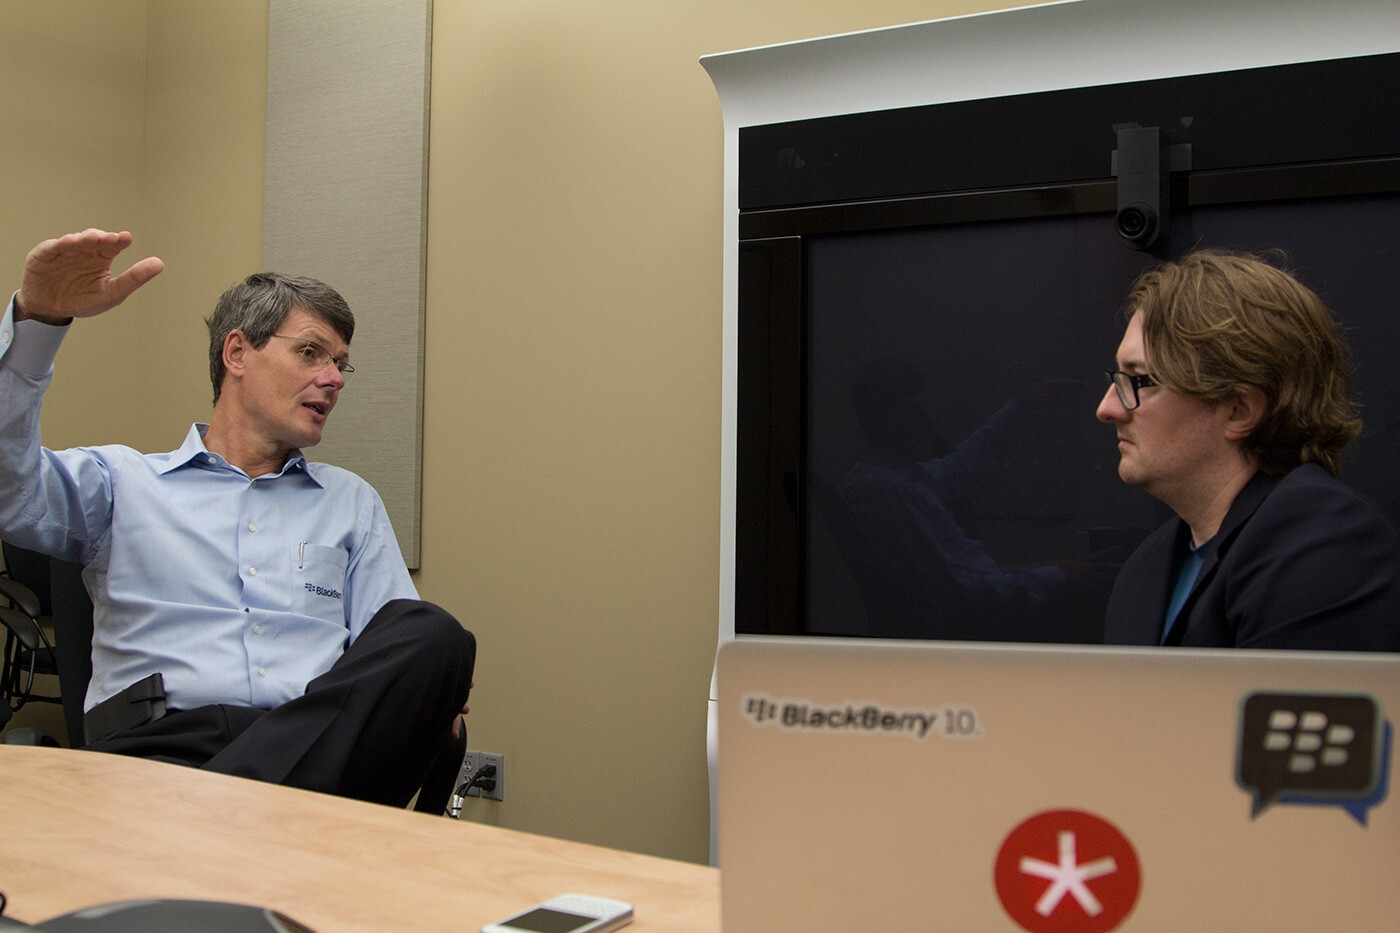 Brainstorming BBRY: What would BlackBerry without a hardware business look like?